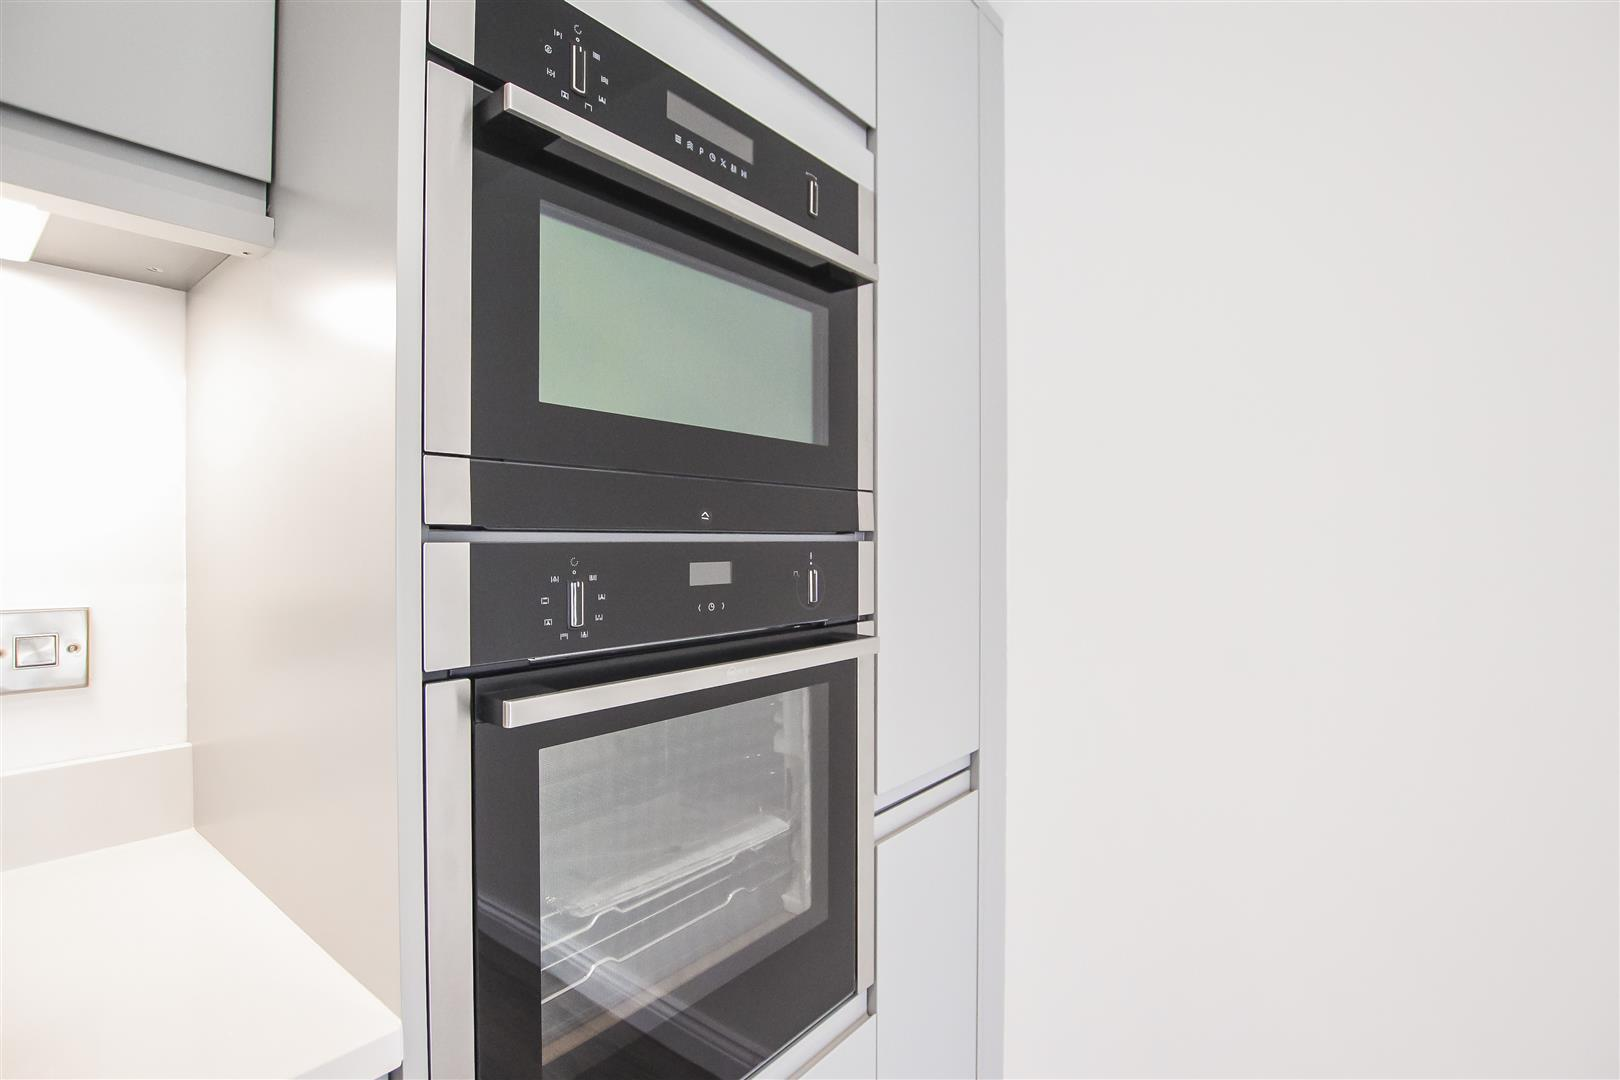 2 Bedroom Apartment For Sale - Image 37